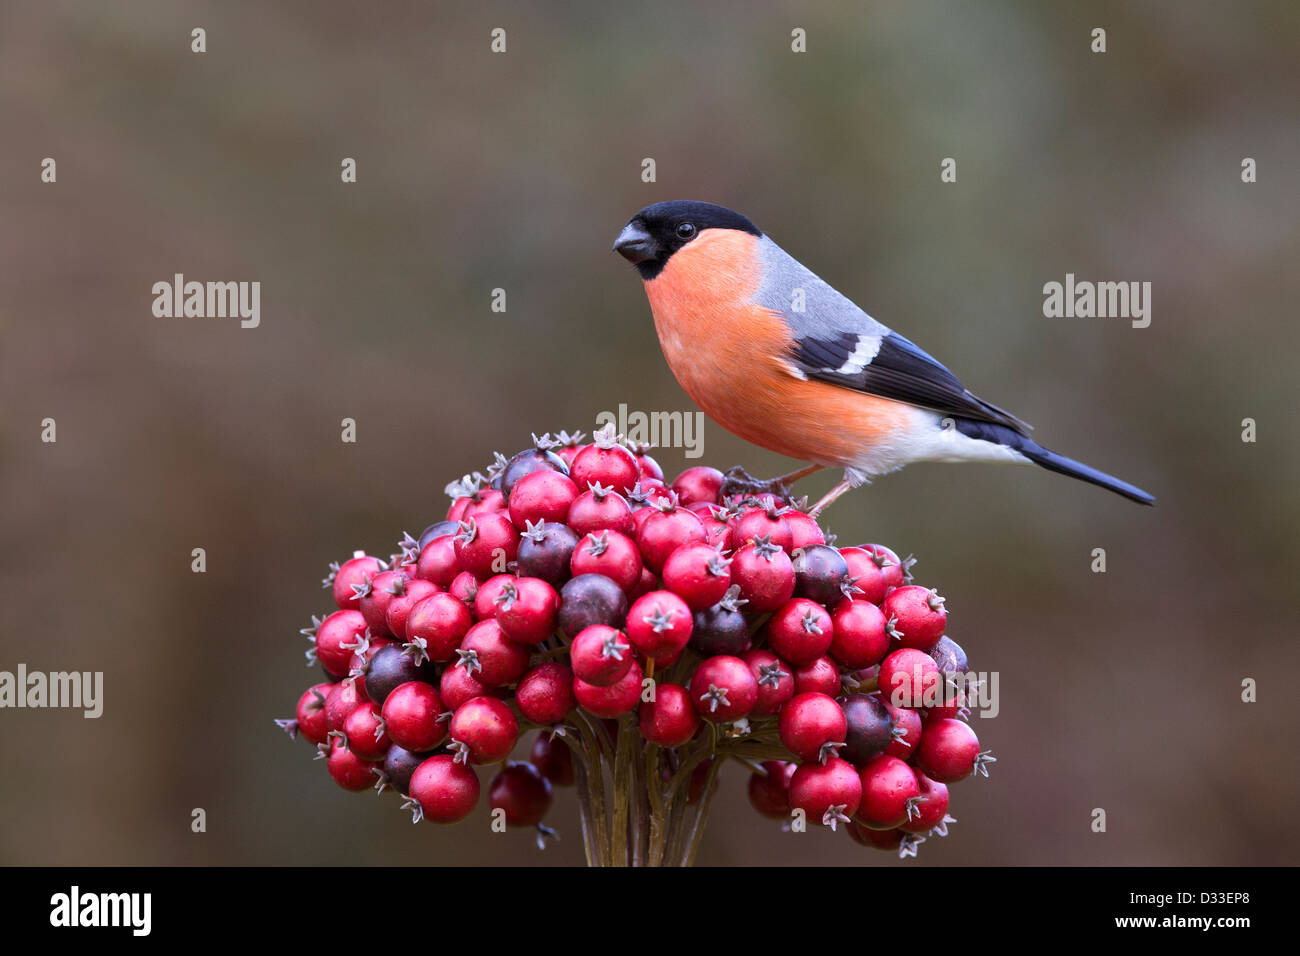 Male Bullfinch on red berries Stock Photo